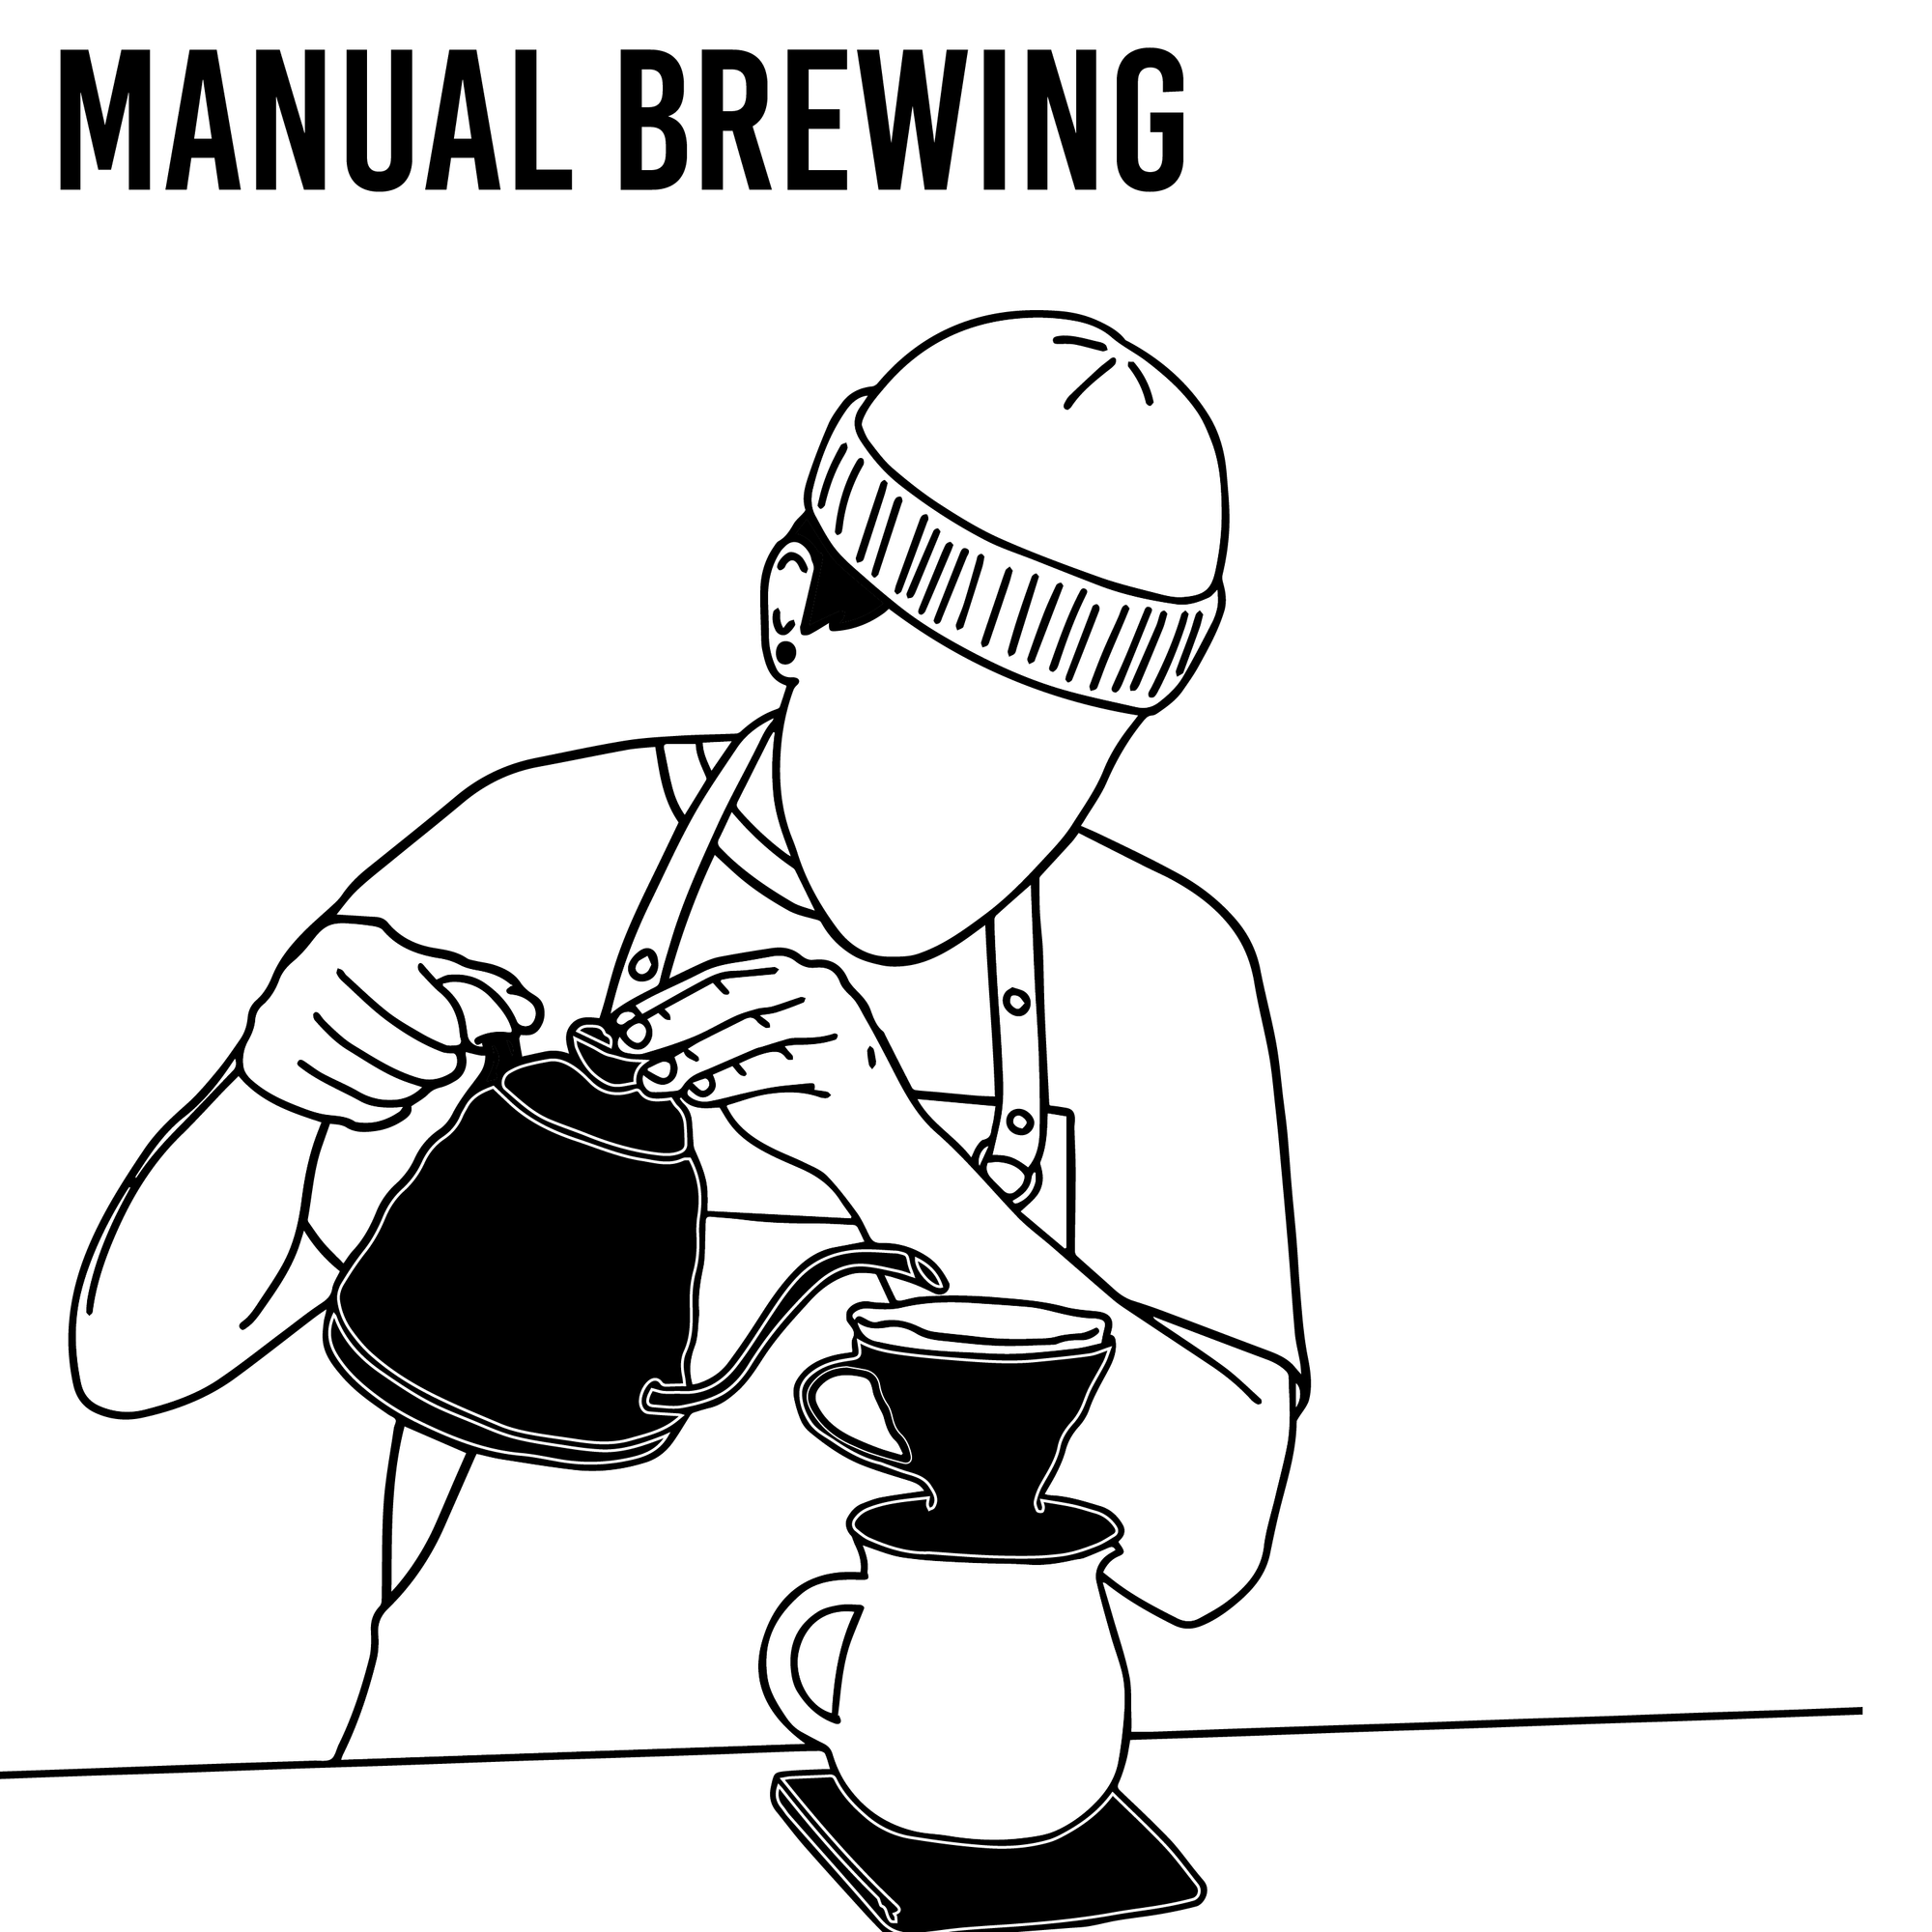 Manual Brewing